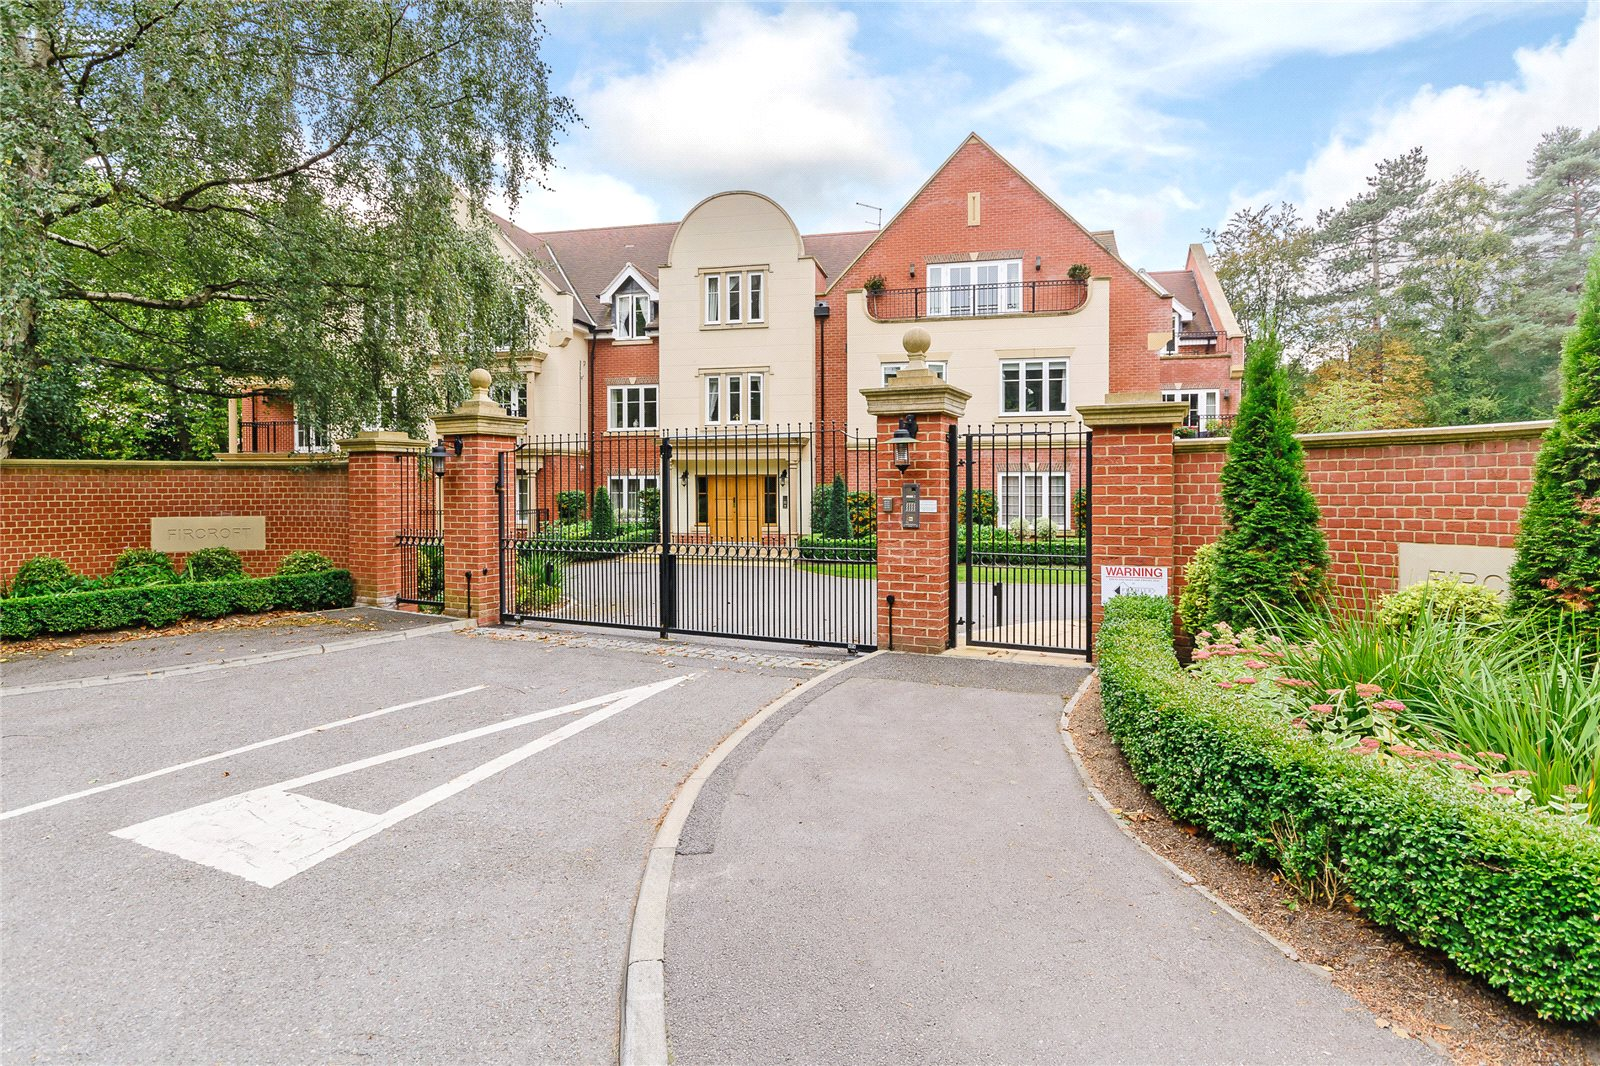 Apartments / Residences for Sale at Devenish Road, Sunningdale, Ascot, Berkshire, SL5 Ascot, England